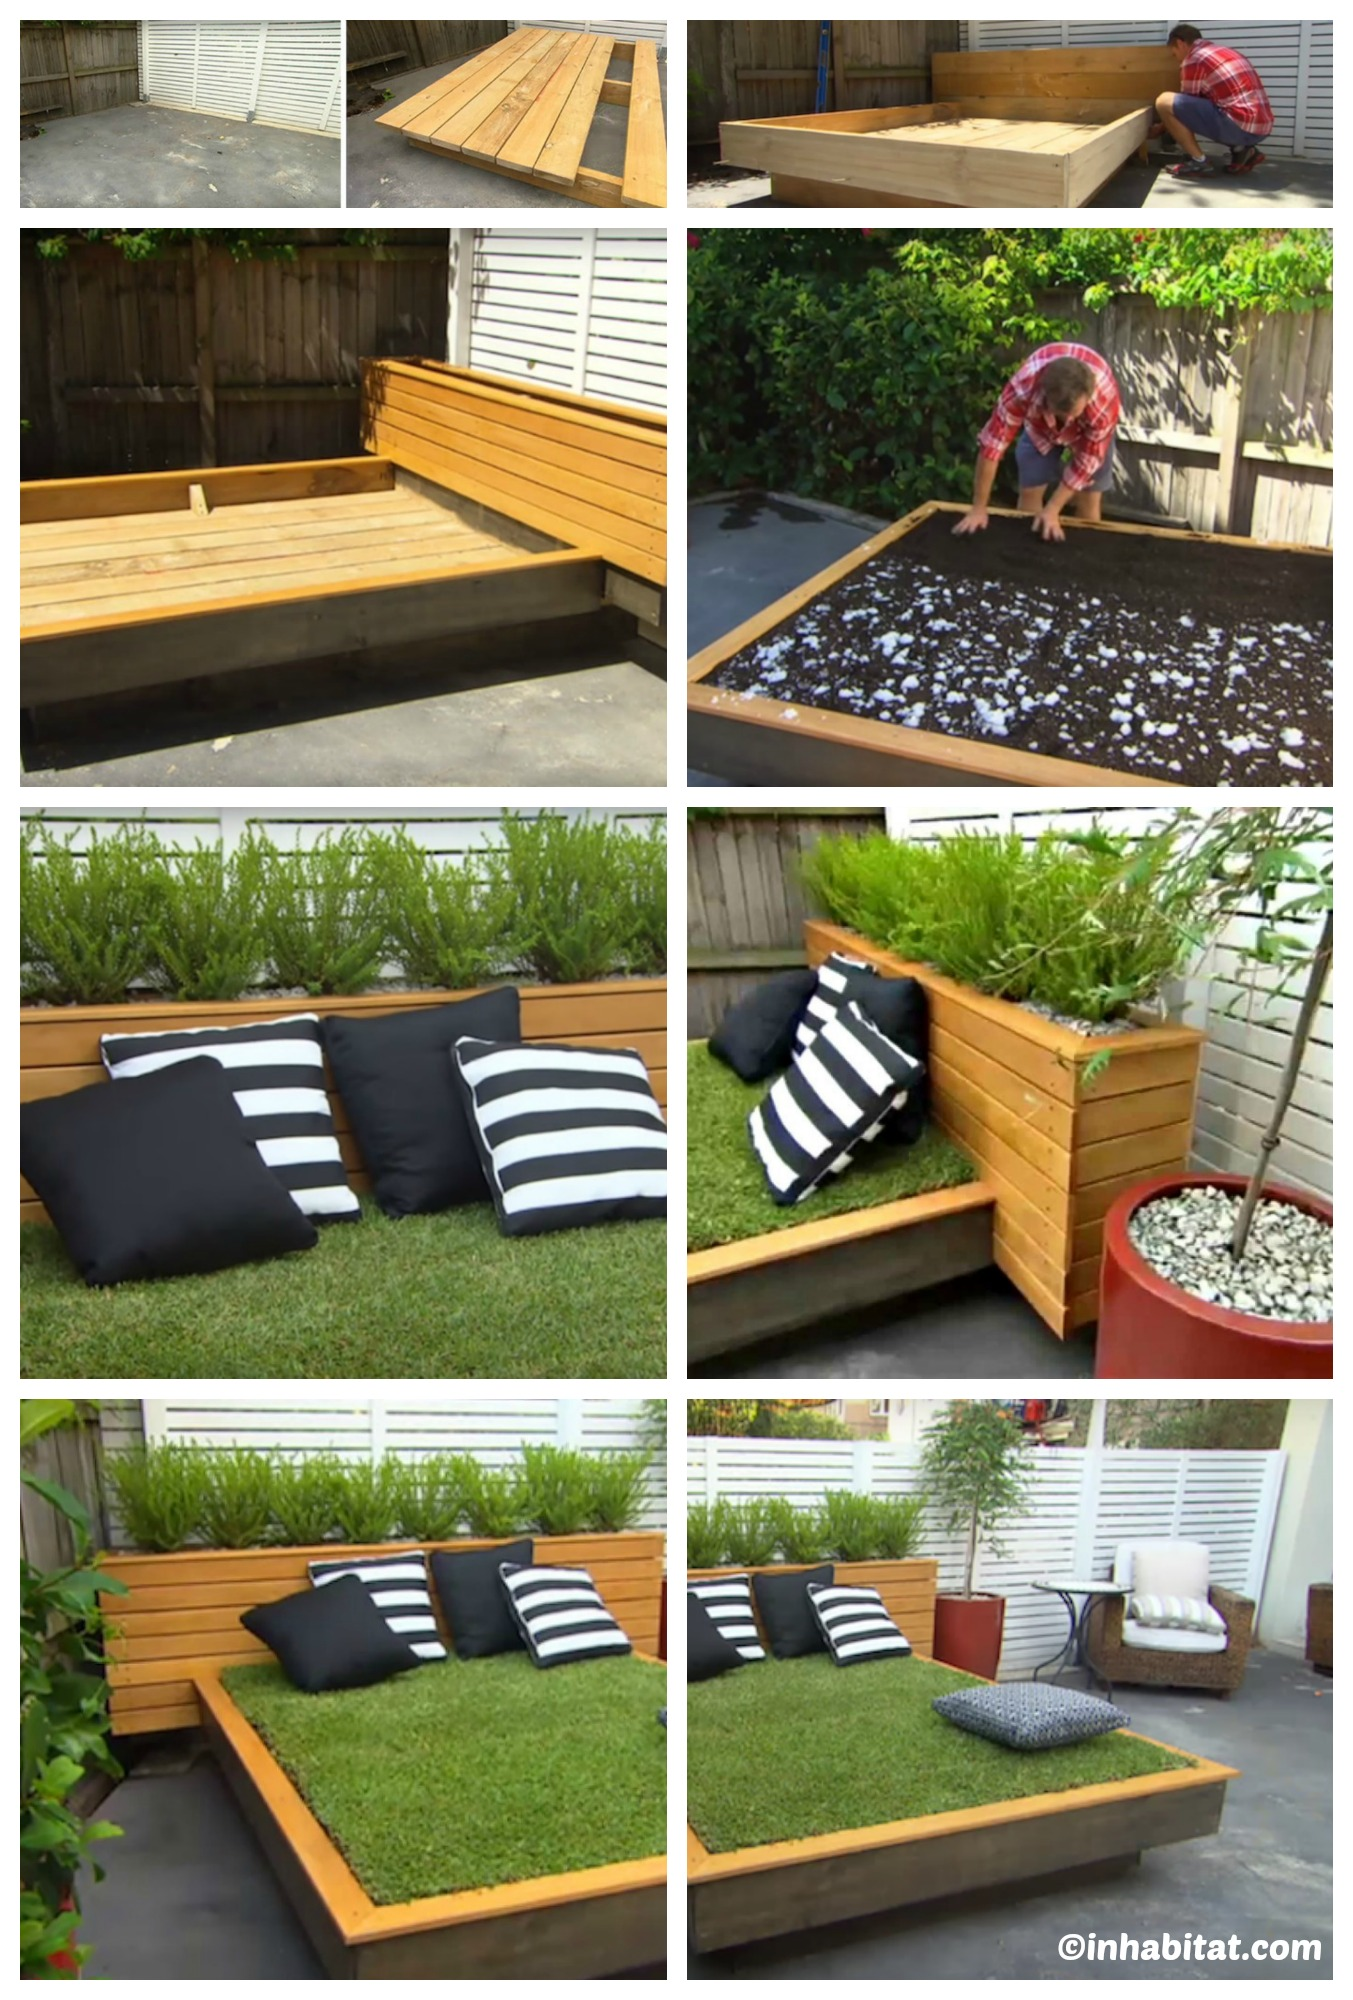 How to make an Outdoor Grass Bed